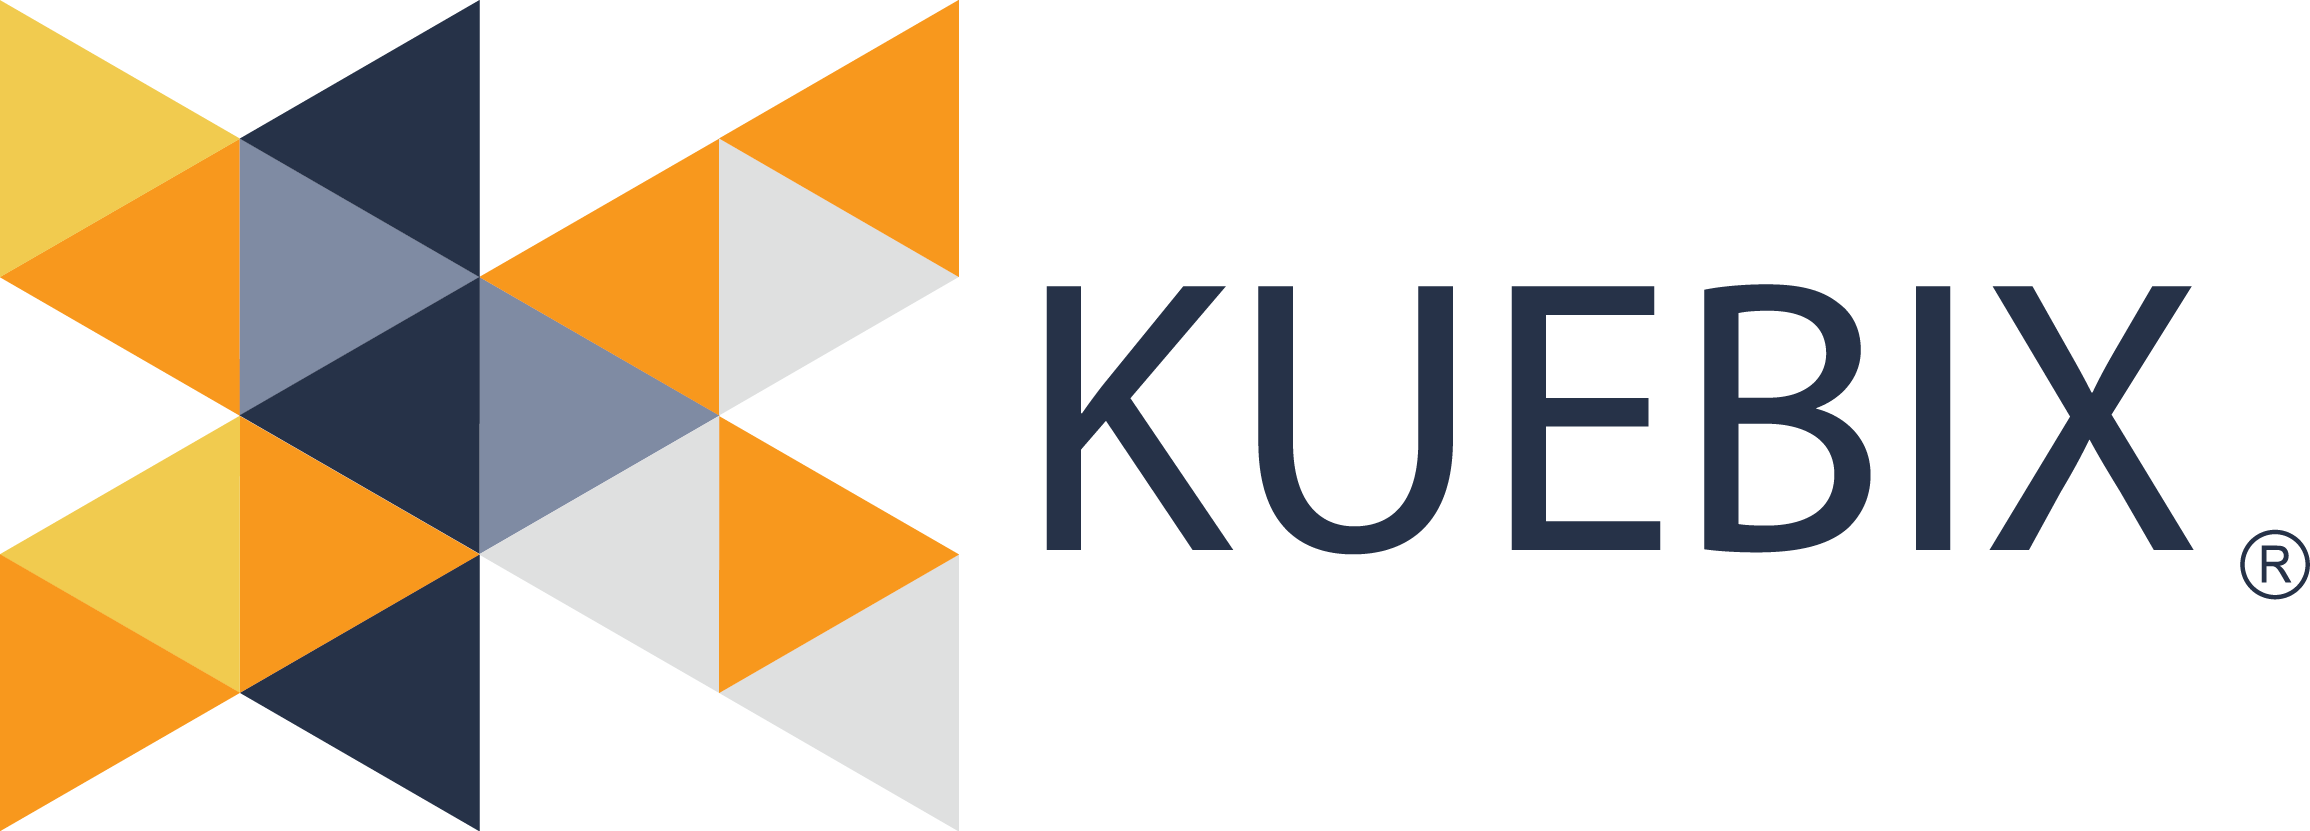 Kuebix Launches Innovative Carrier Relationship Manager Solution